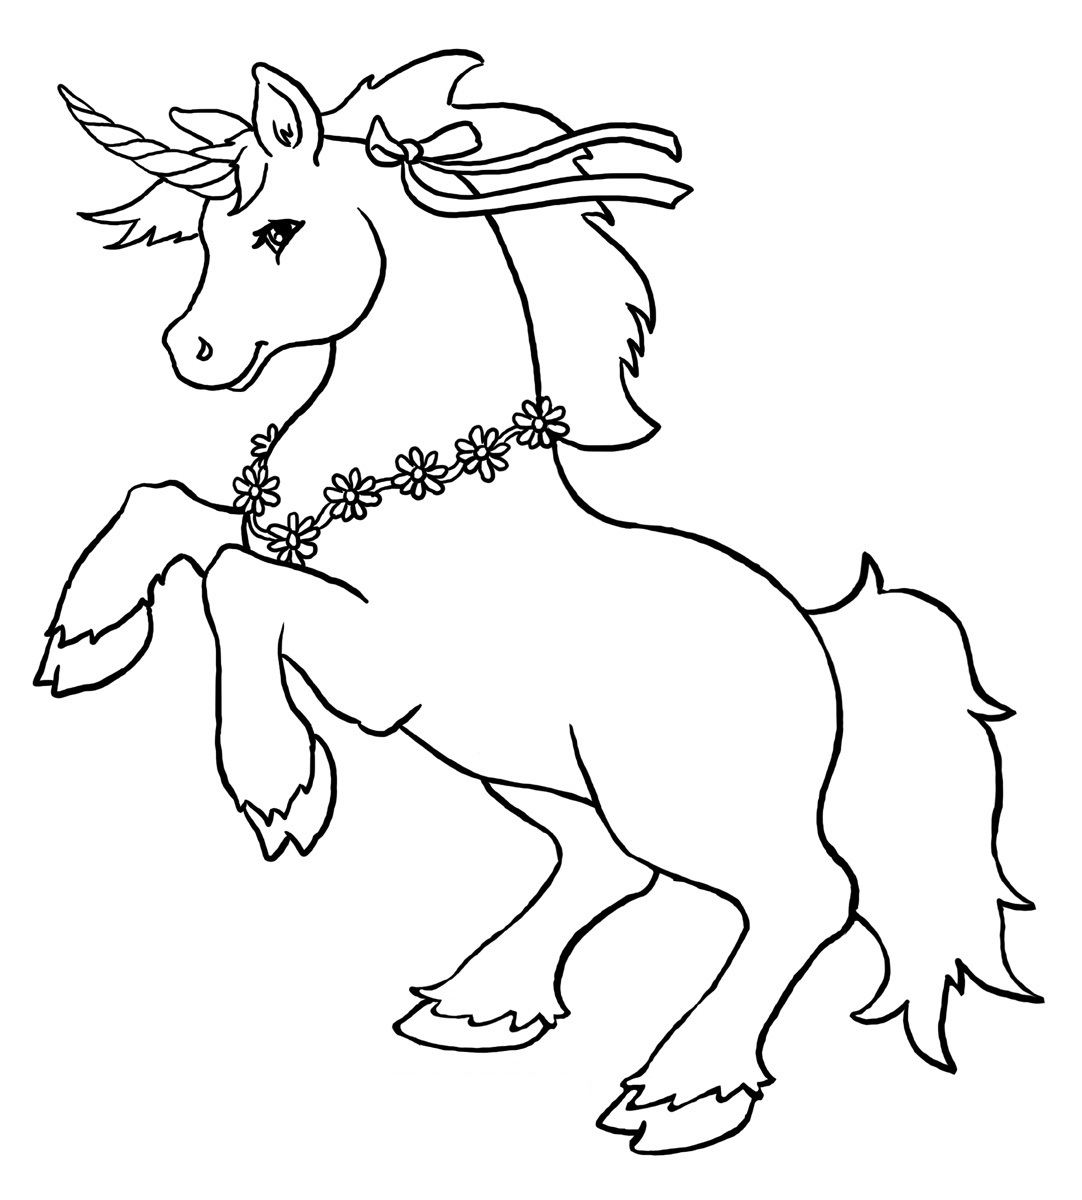 unicorn coloring pages printables - photo#1